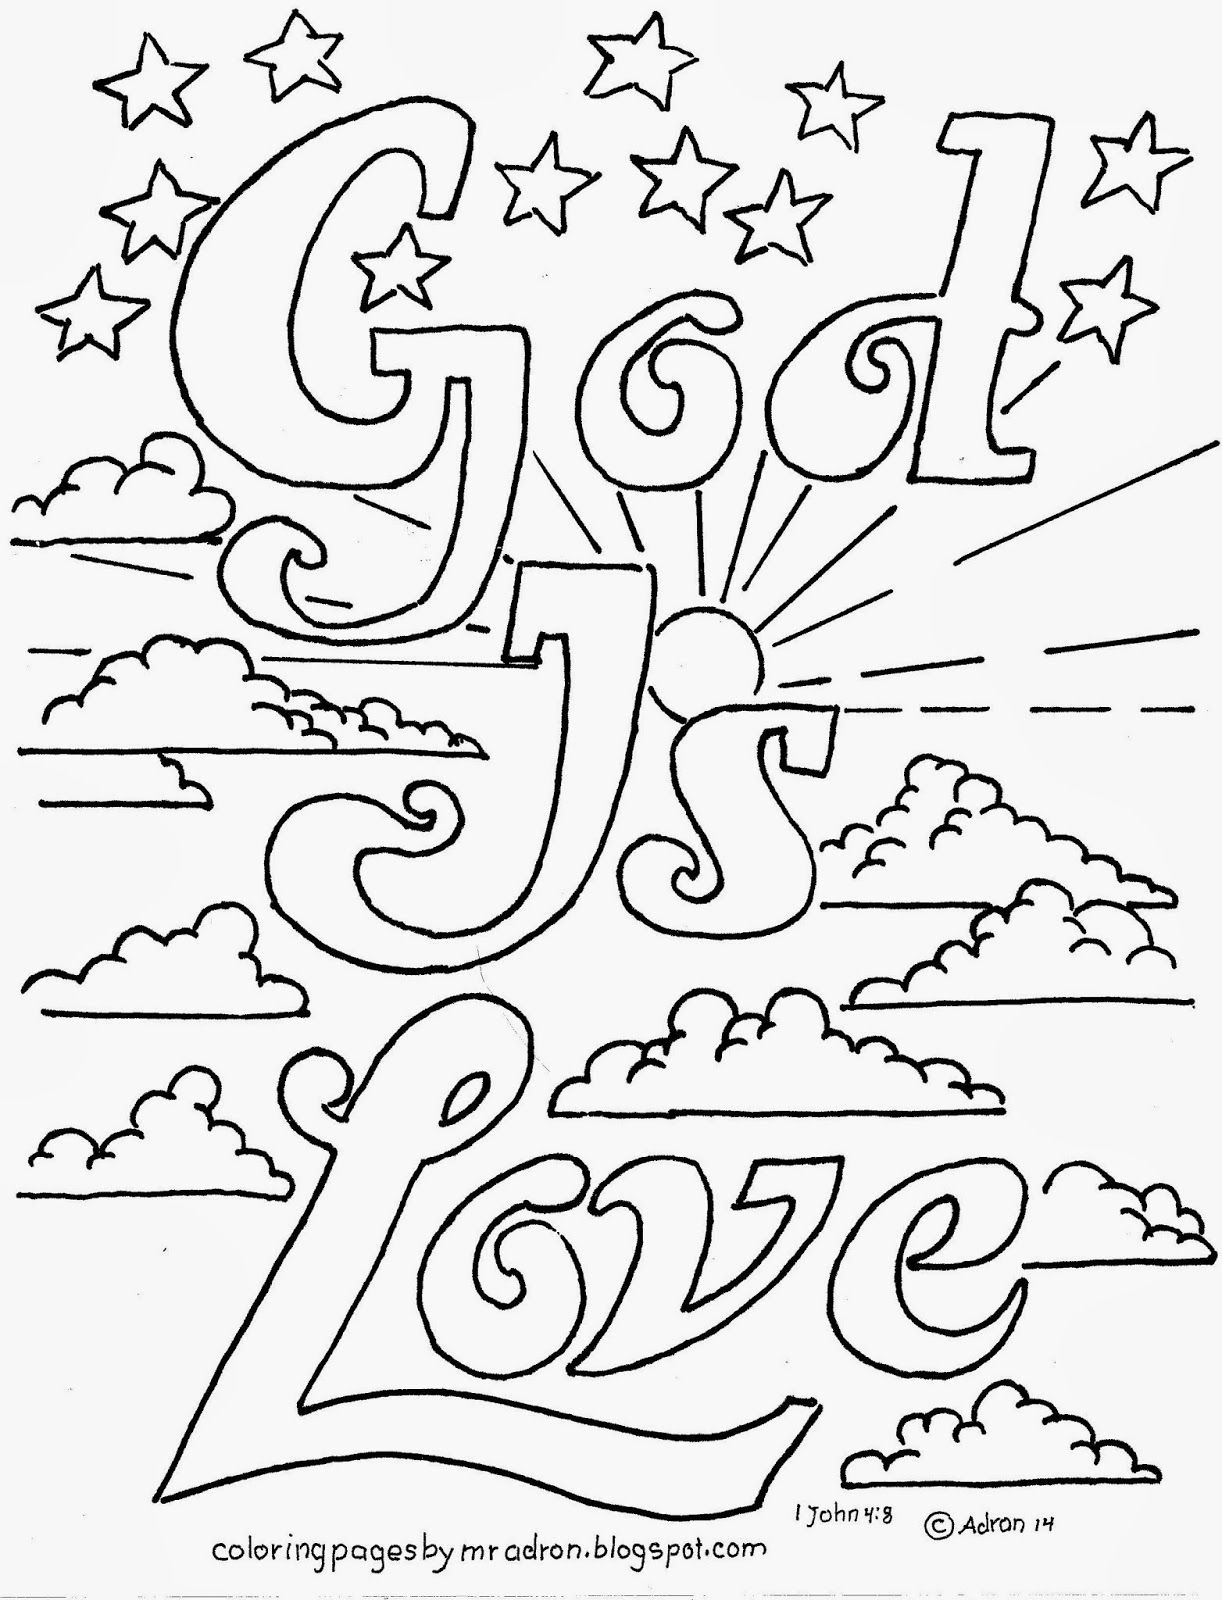 Printable coloring pages love - Coloring Pages For Kids By Mr Adron God Is Love Printable Free Kid S